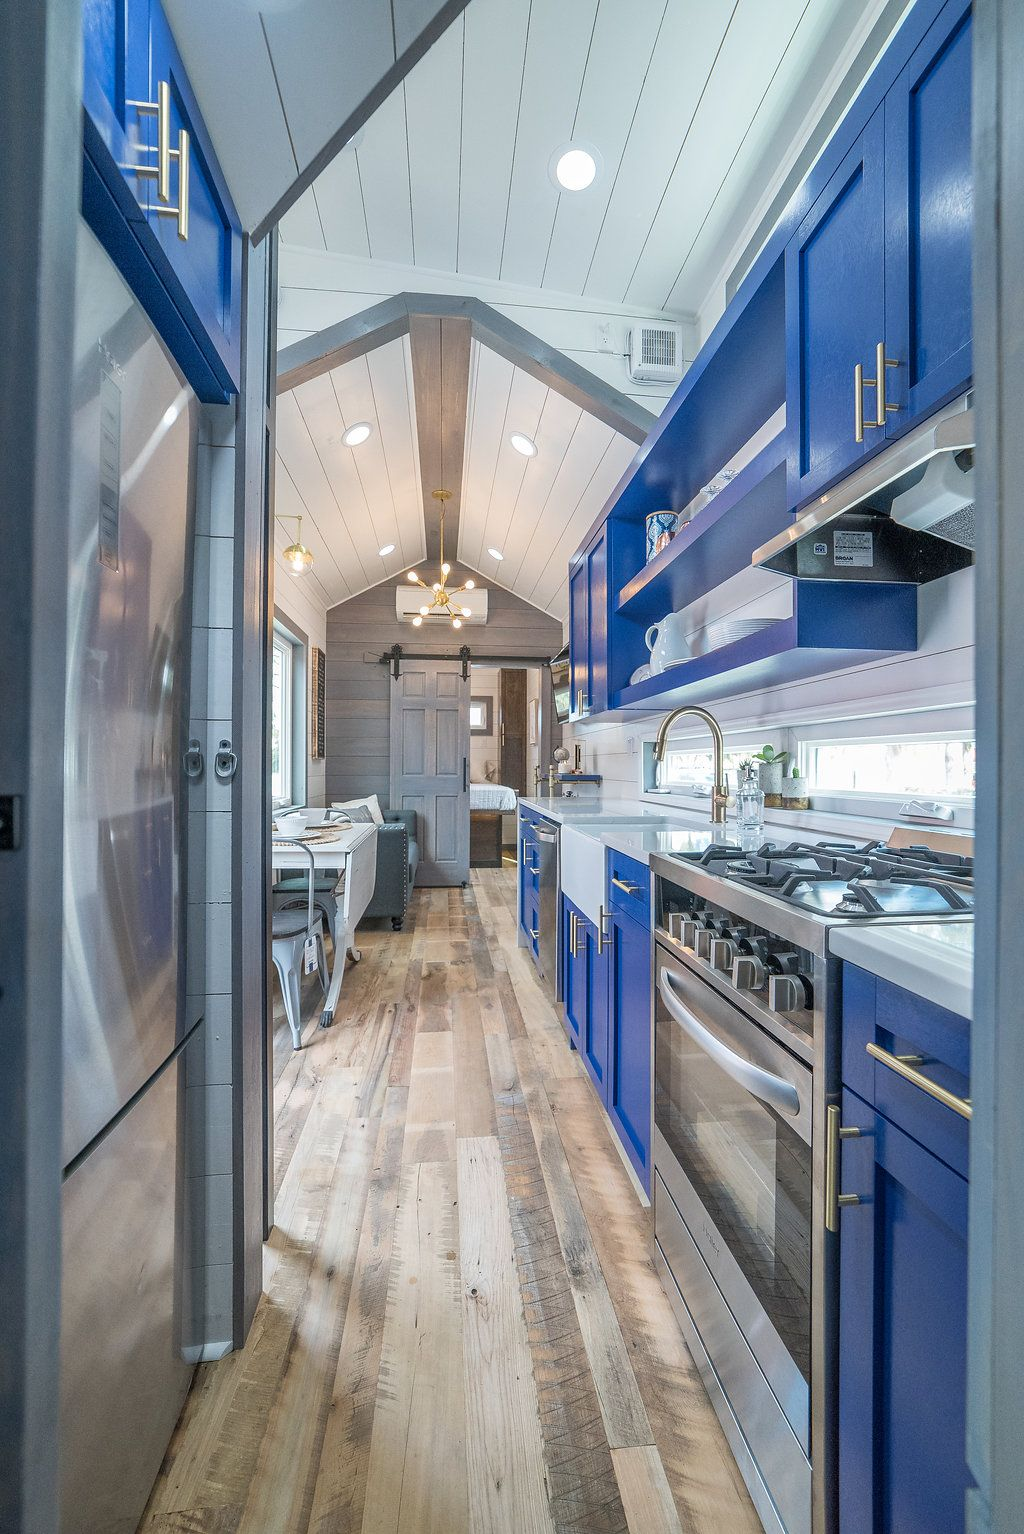 330 Sq Ft Henderson Tiny House On Wheels By Movable Roots Tiny House On Wheels Tiny House Living House On Wheels